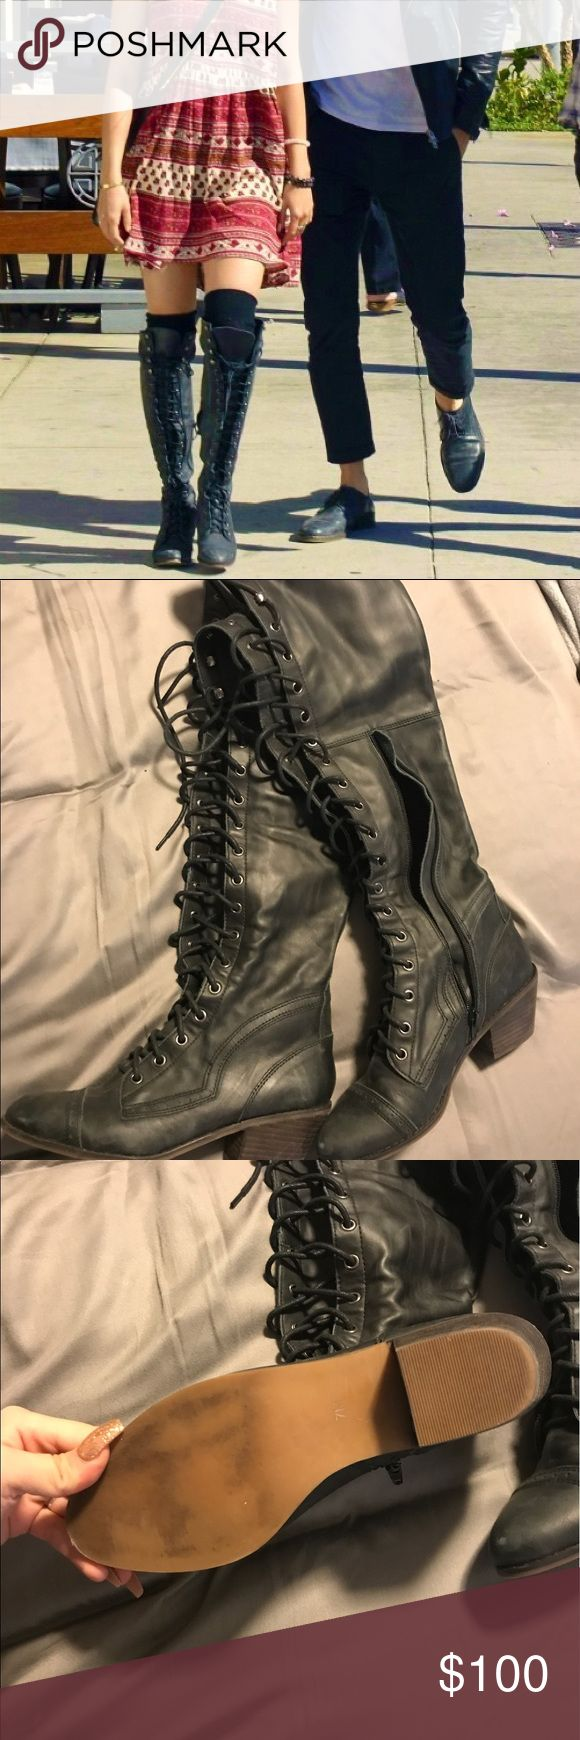 FREE PEOPLE lace up boots size 7 Like new without box Free People Lace Up boots. As seen on Vanessa Hudgens Free People Shoes Over the Knee Boots